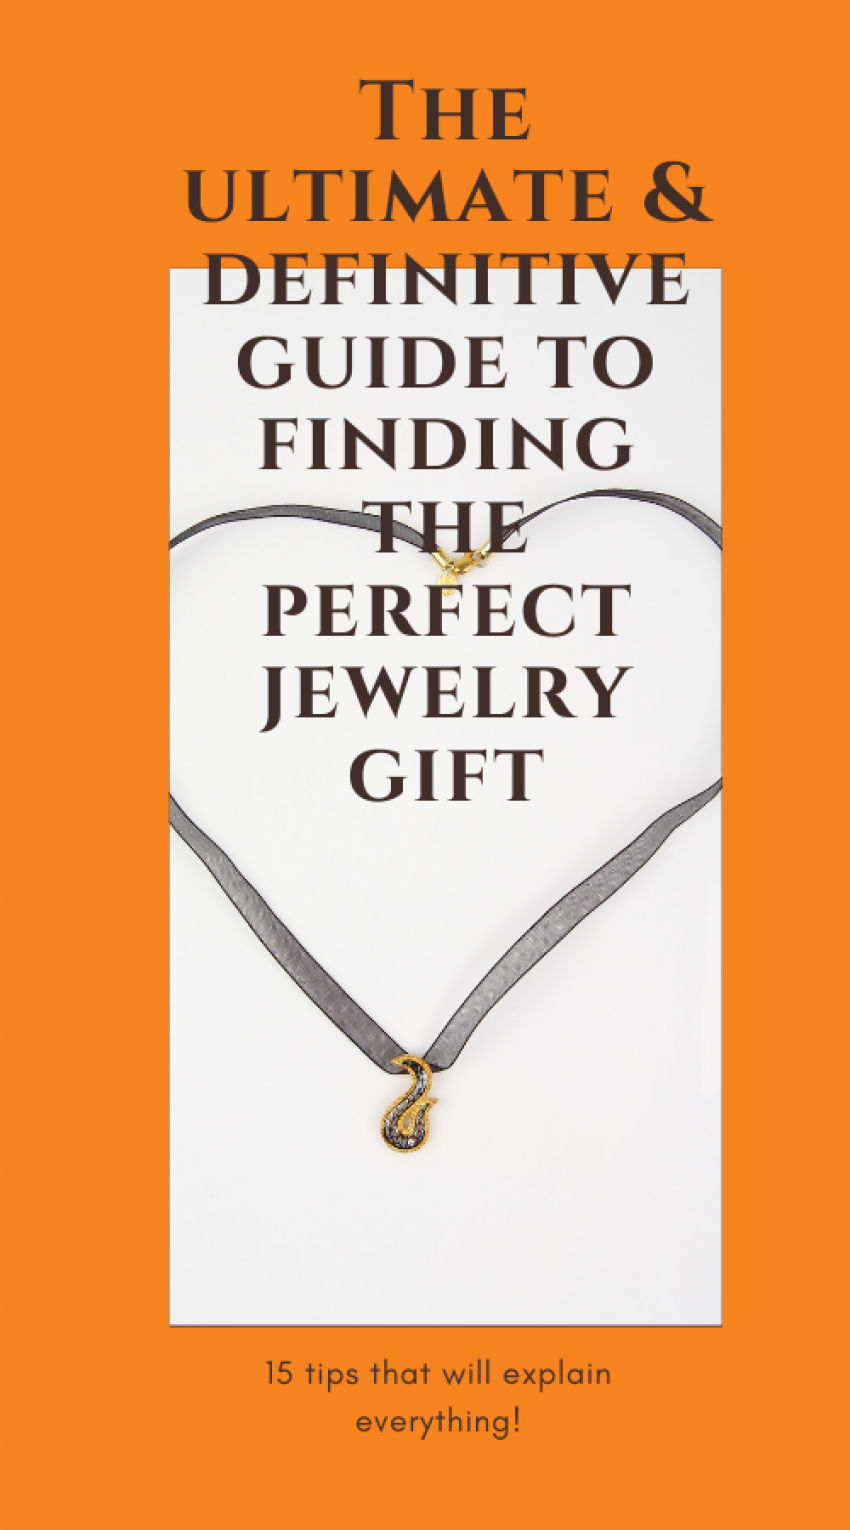 The Ultimate and Definitive Guide to Finding the Perfect Jewelry Gift